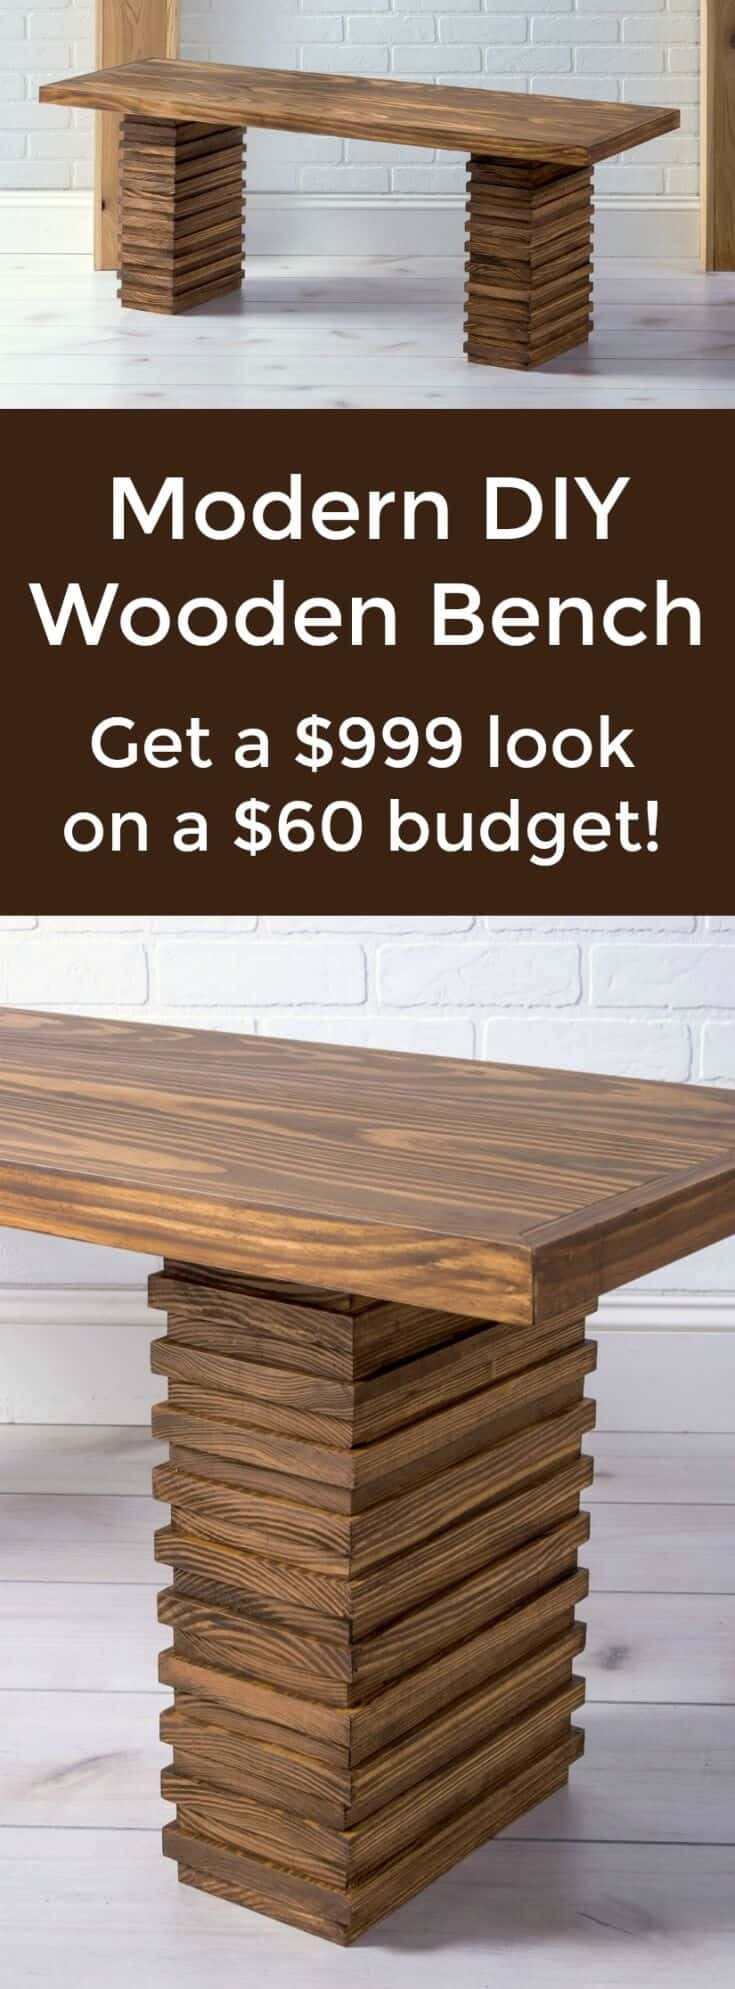 Amazing Crate And Barrel Inspired Modern Wooden Bench Diy Candy Theyellowbook Wood Chair Design Ideas Theyellowbookinfo